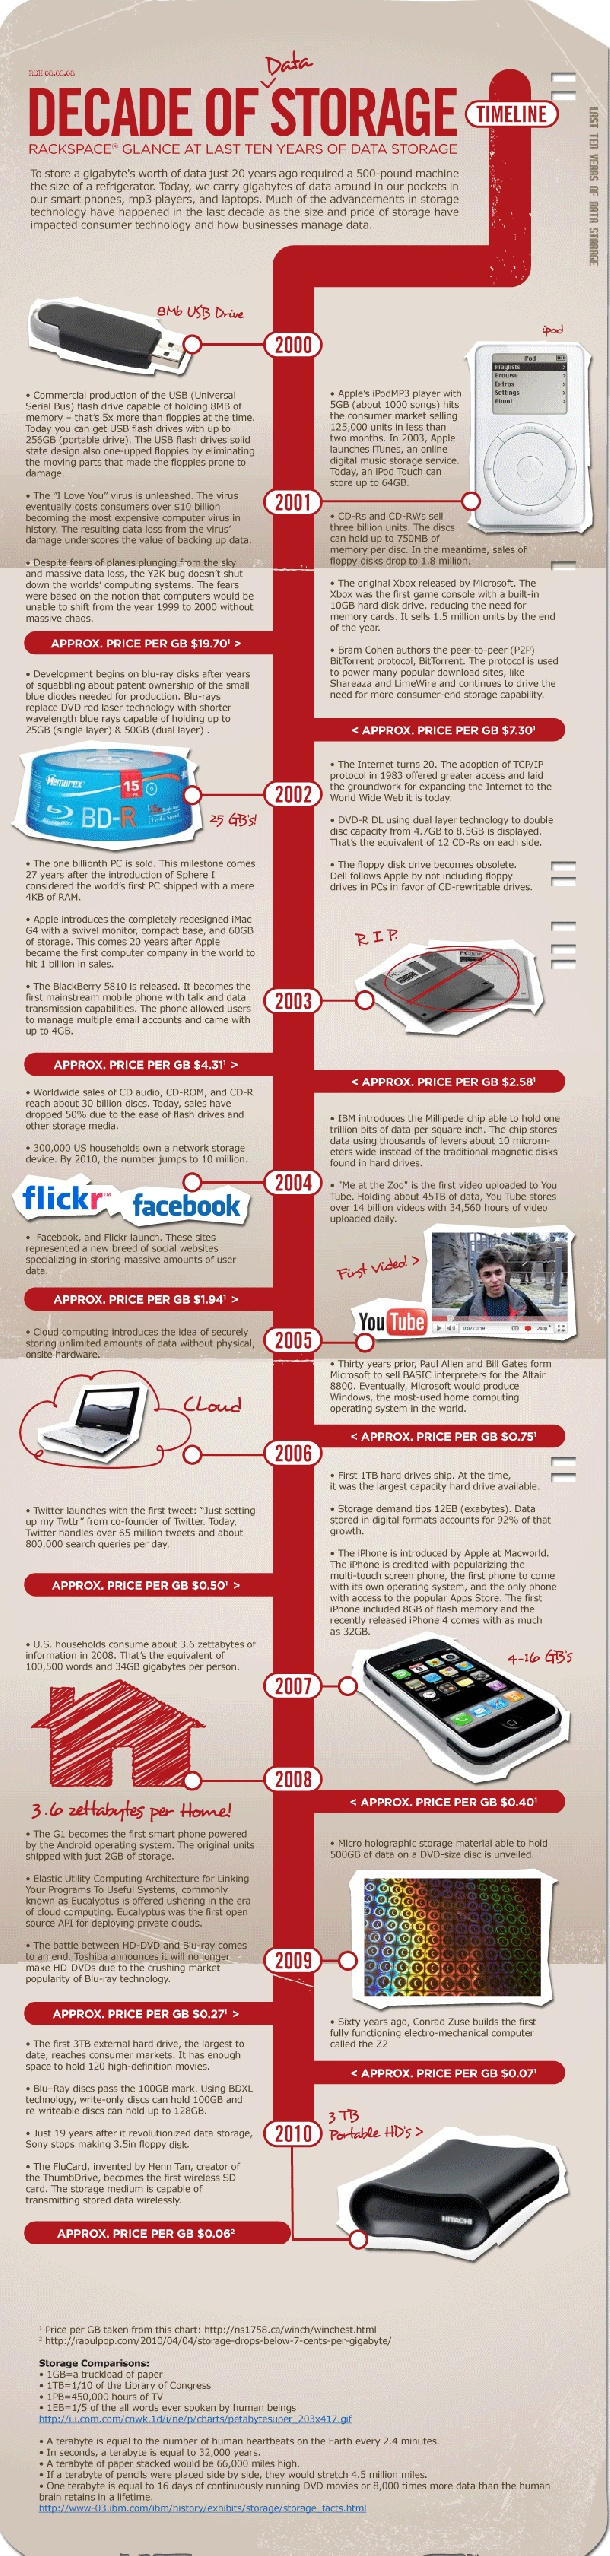 An interesting cloud computing infographic from Rackspace visualizing data  storage technology advances in the past 10 years.